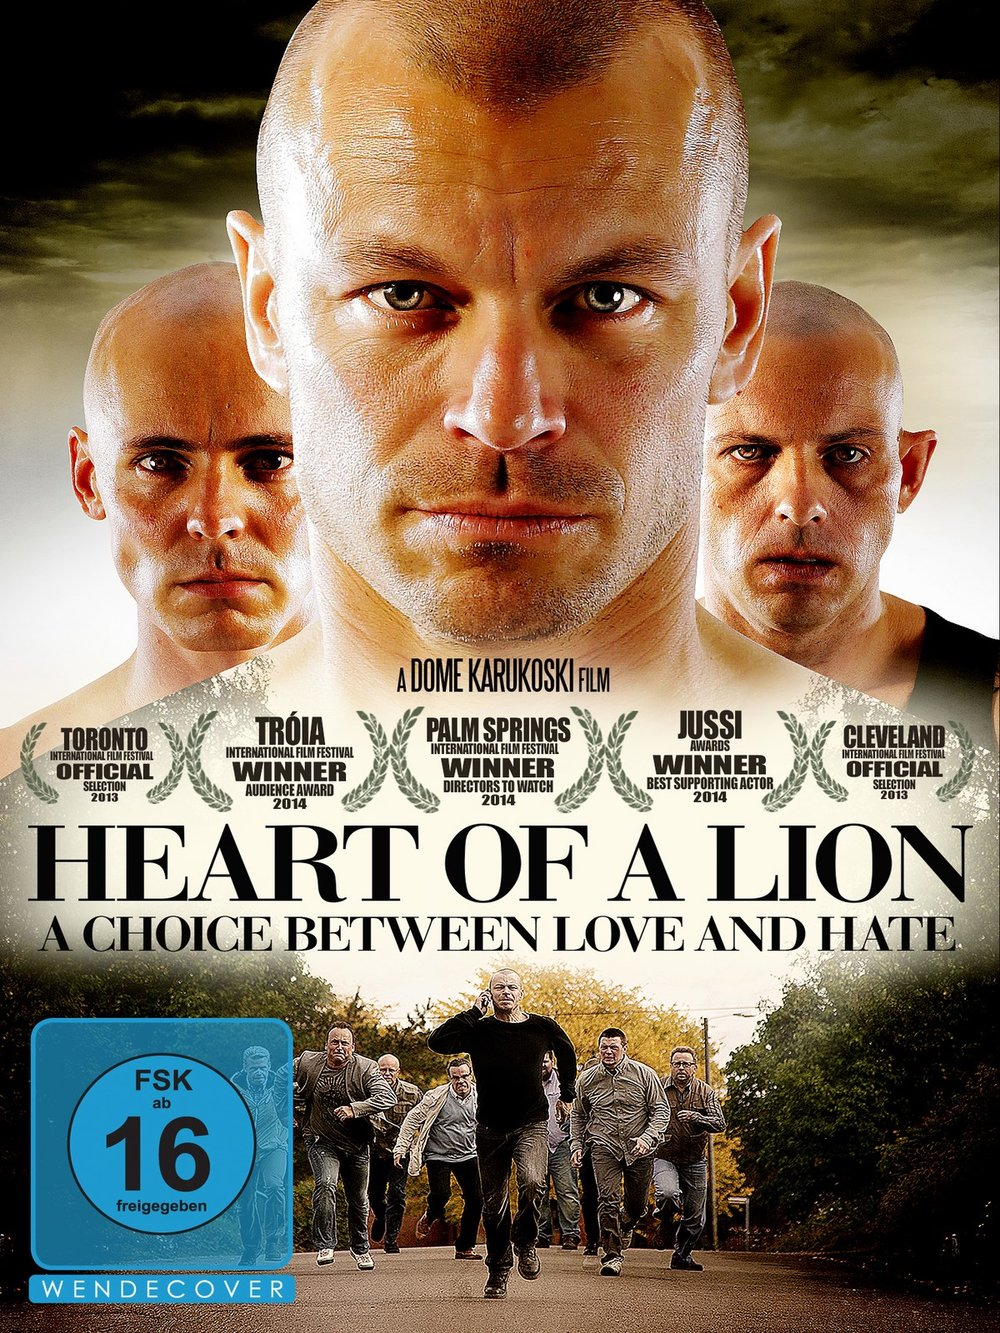 Copy of Heart Of A Lion